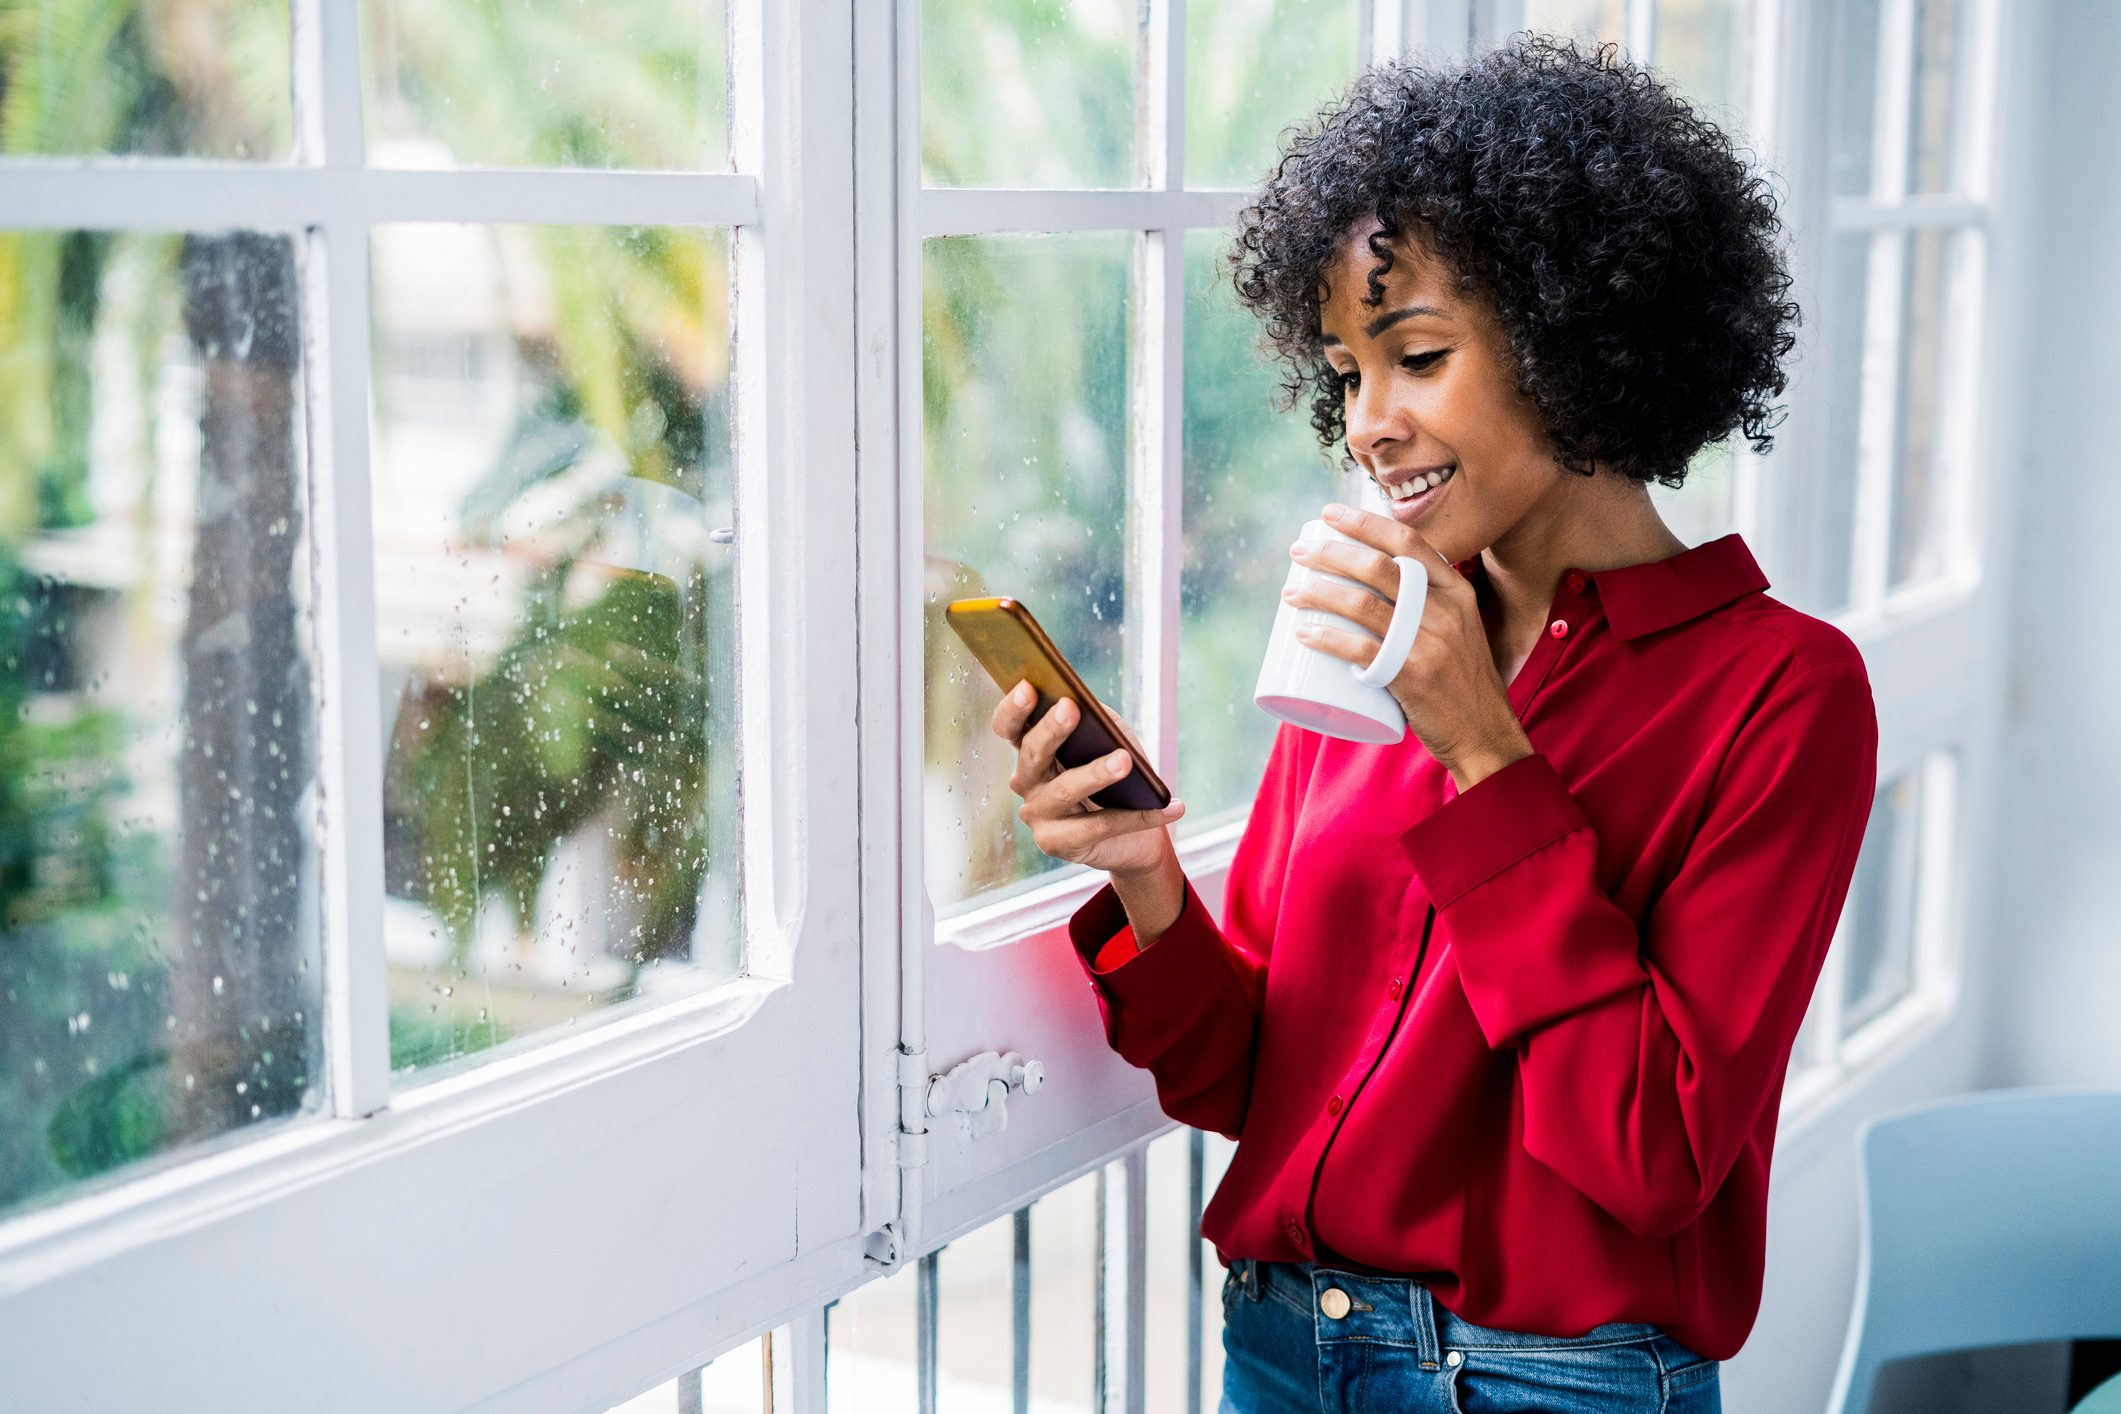 woman drinking a cup of coffee and looking at phone